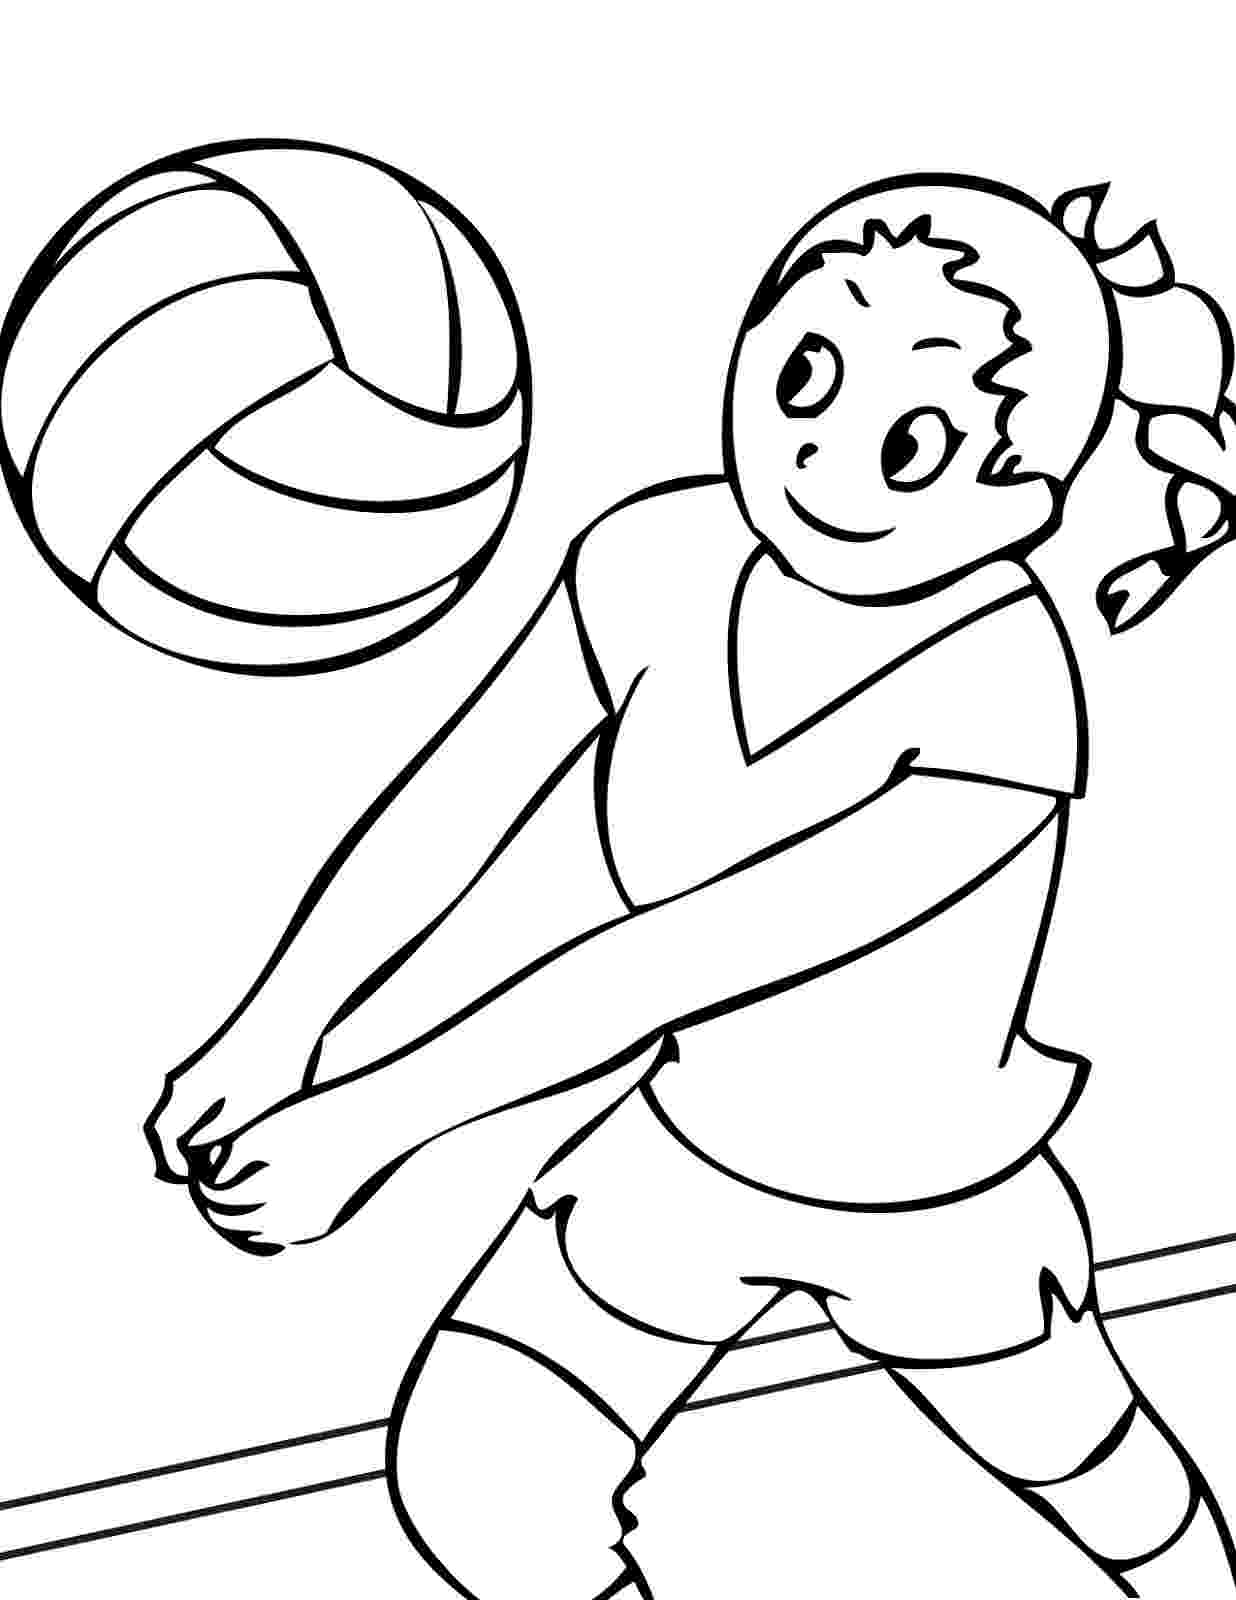 sports colouring sports coloring pages coloring pages to print colouring sports